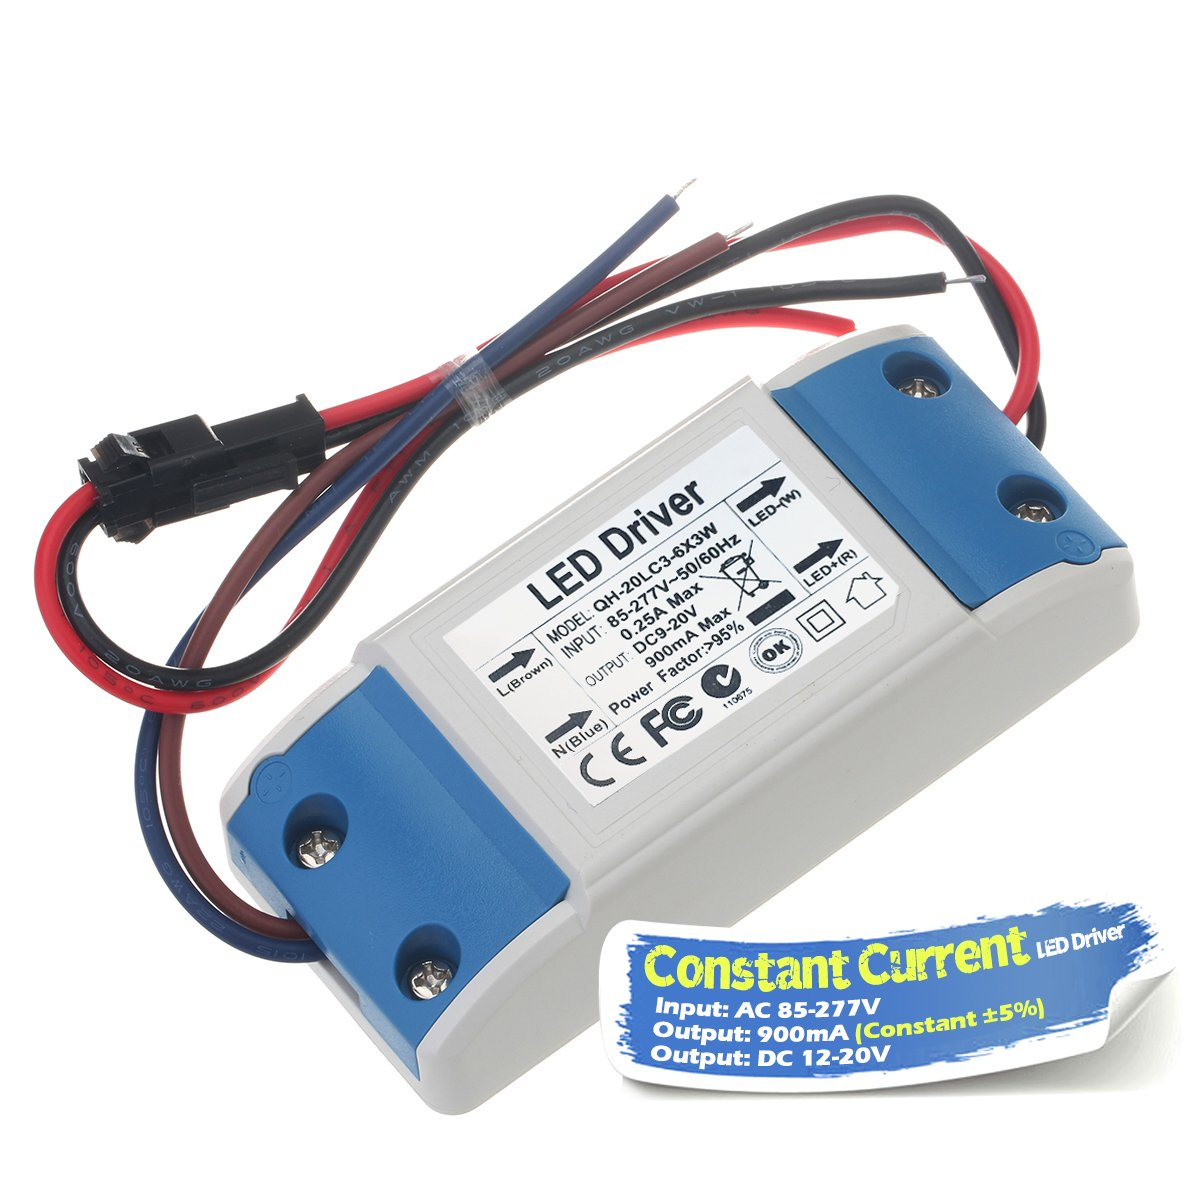 Chanzon Led Driver 900ma Constant Current Output 12v 20v Input 85 Voltage Controlled Source Op 277v Ac Dc 4 6 X3 12w 15w 18w 20w Power Supply 900 Ma Lighting Transformer Drivers